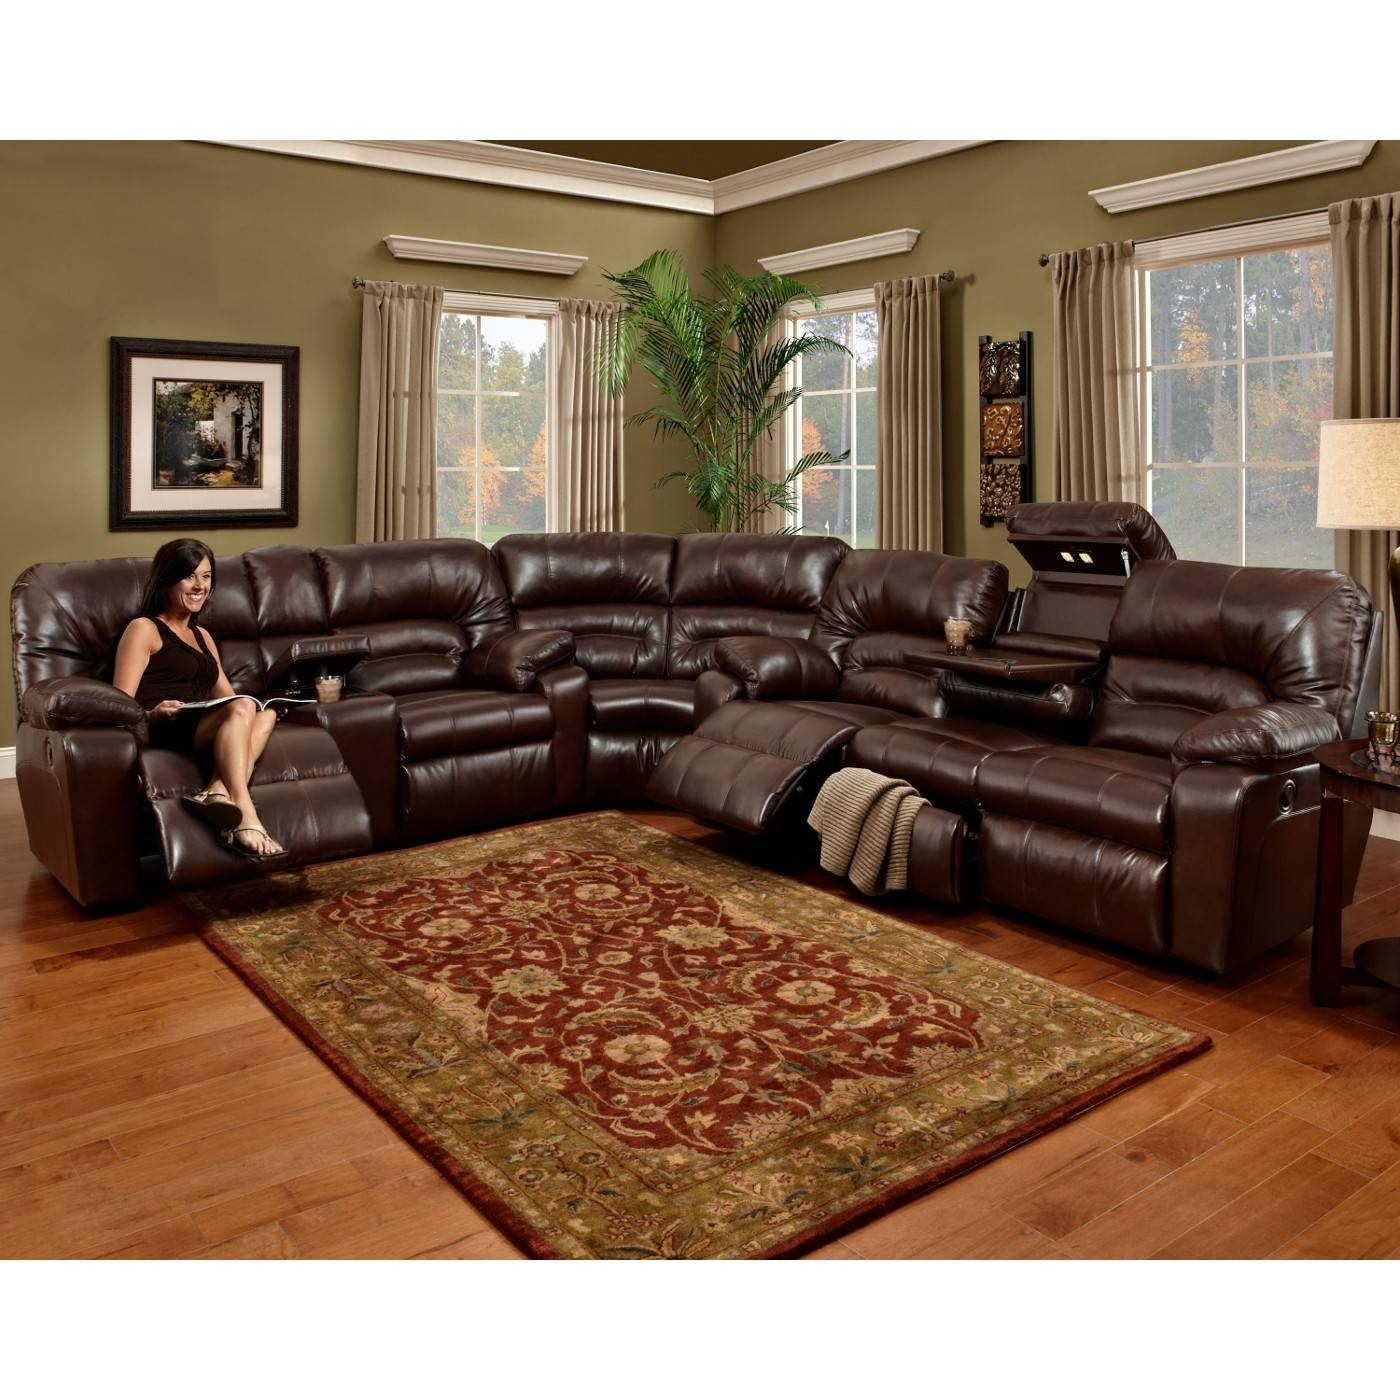 Media Room Sectional Sofas Artistic Color Decor Best With Media inside Media Room Sectional Sofas (Image 11 of 25)